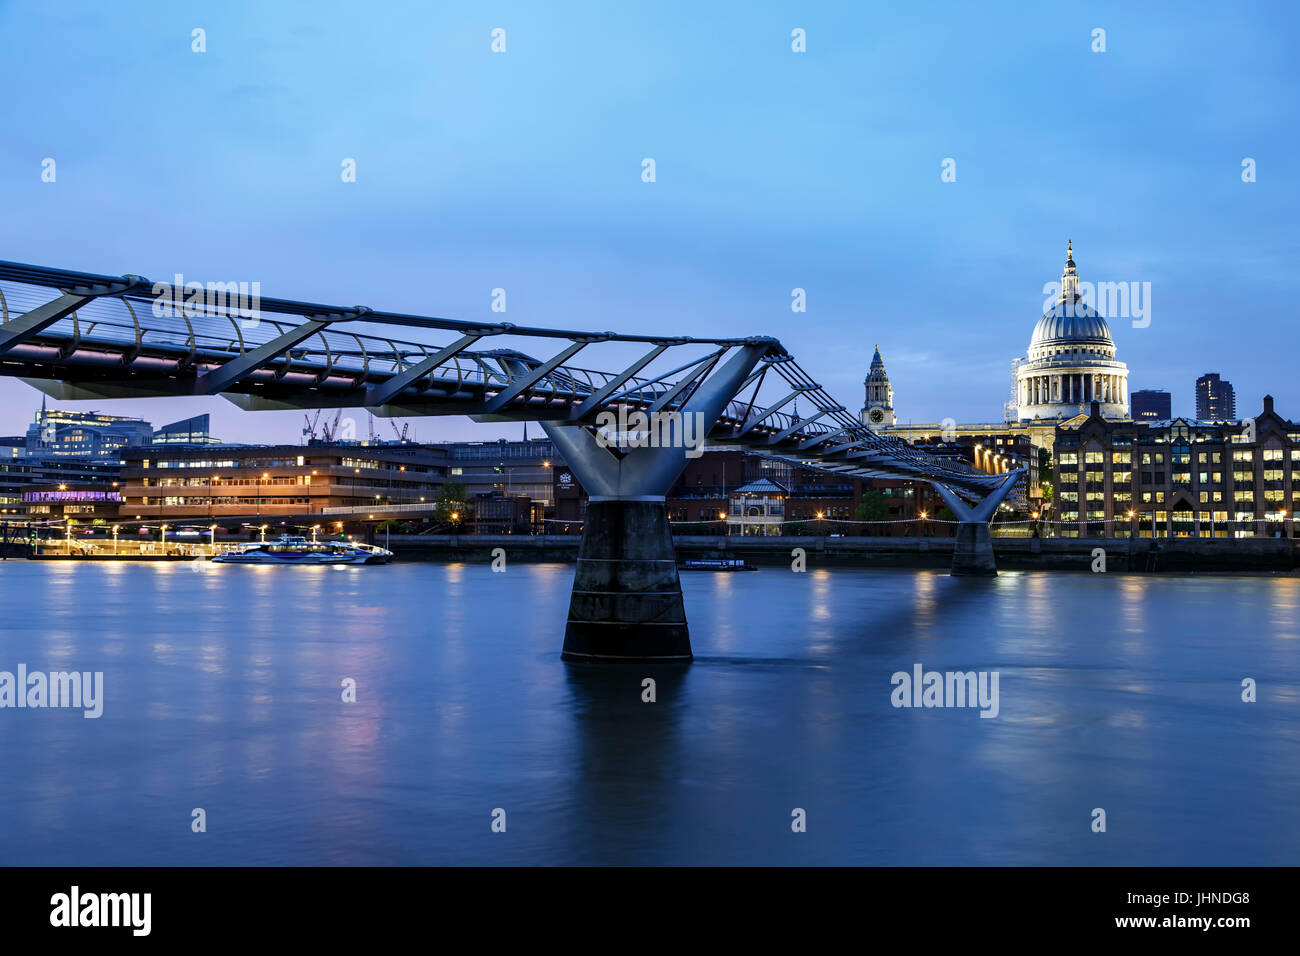 St. Paul's Cathedral, Millennium Bridge and River Thames, London, England, United Kingdom - Stock Image